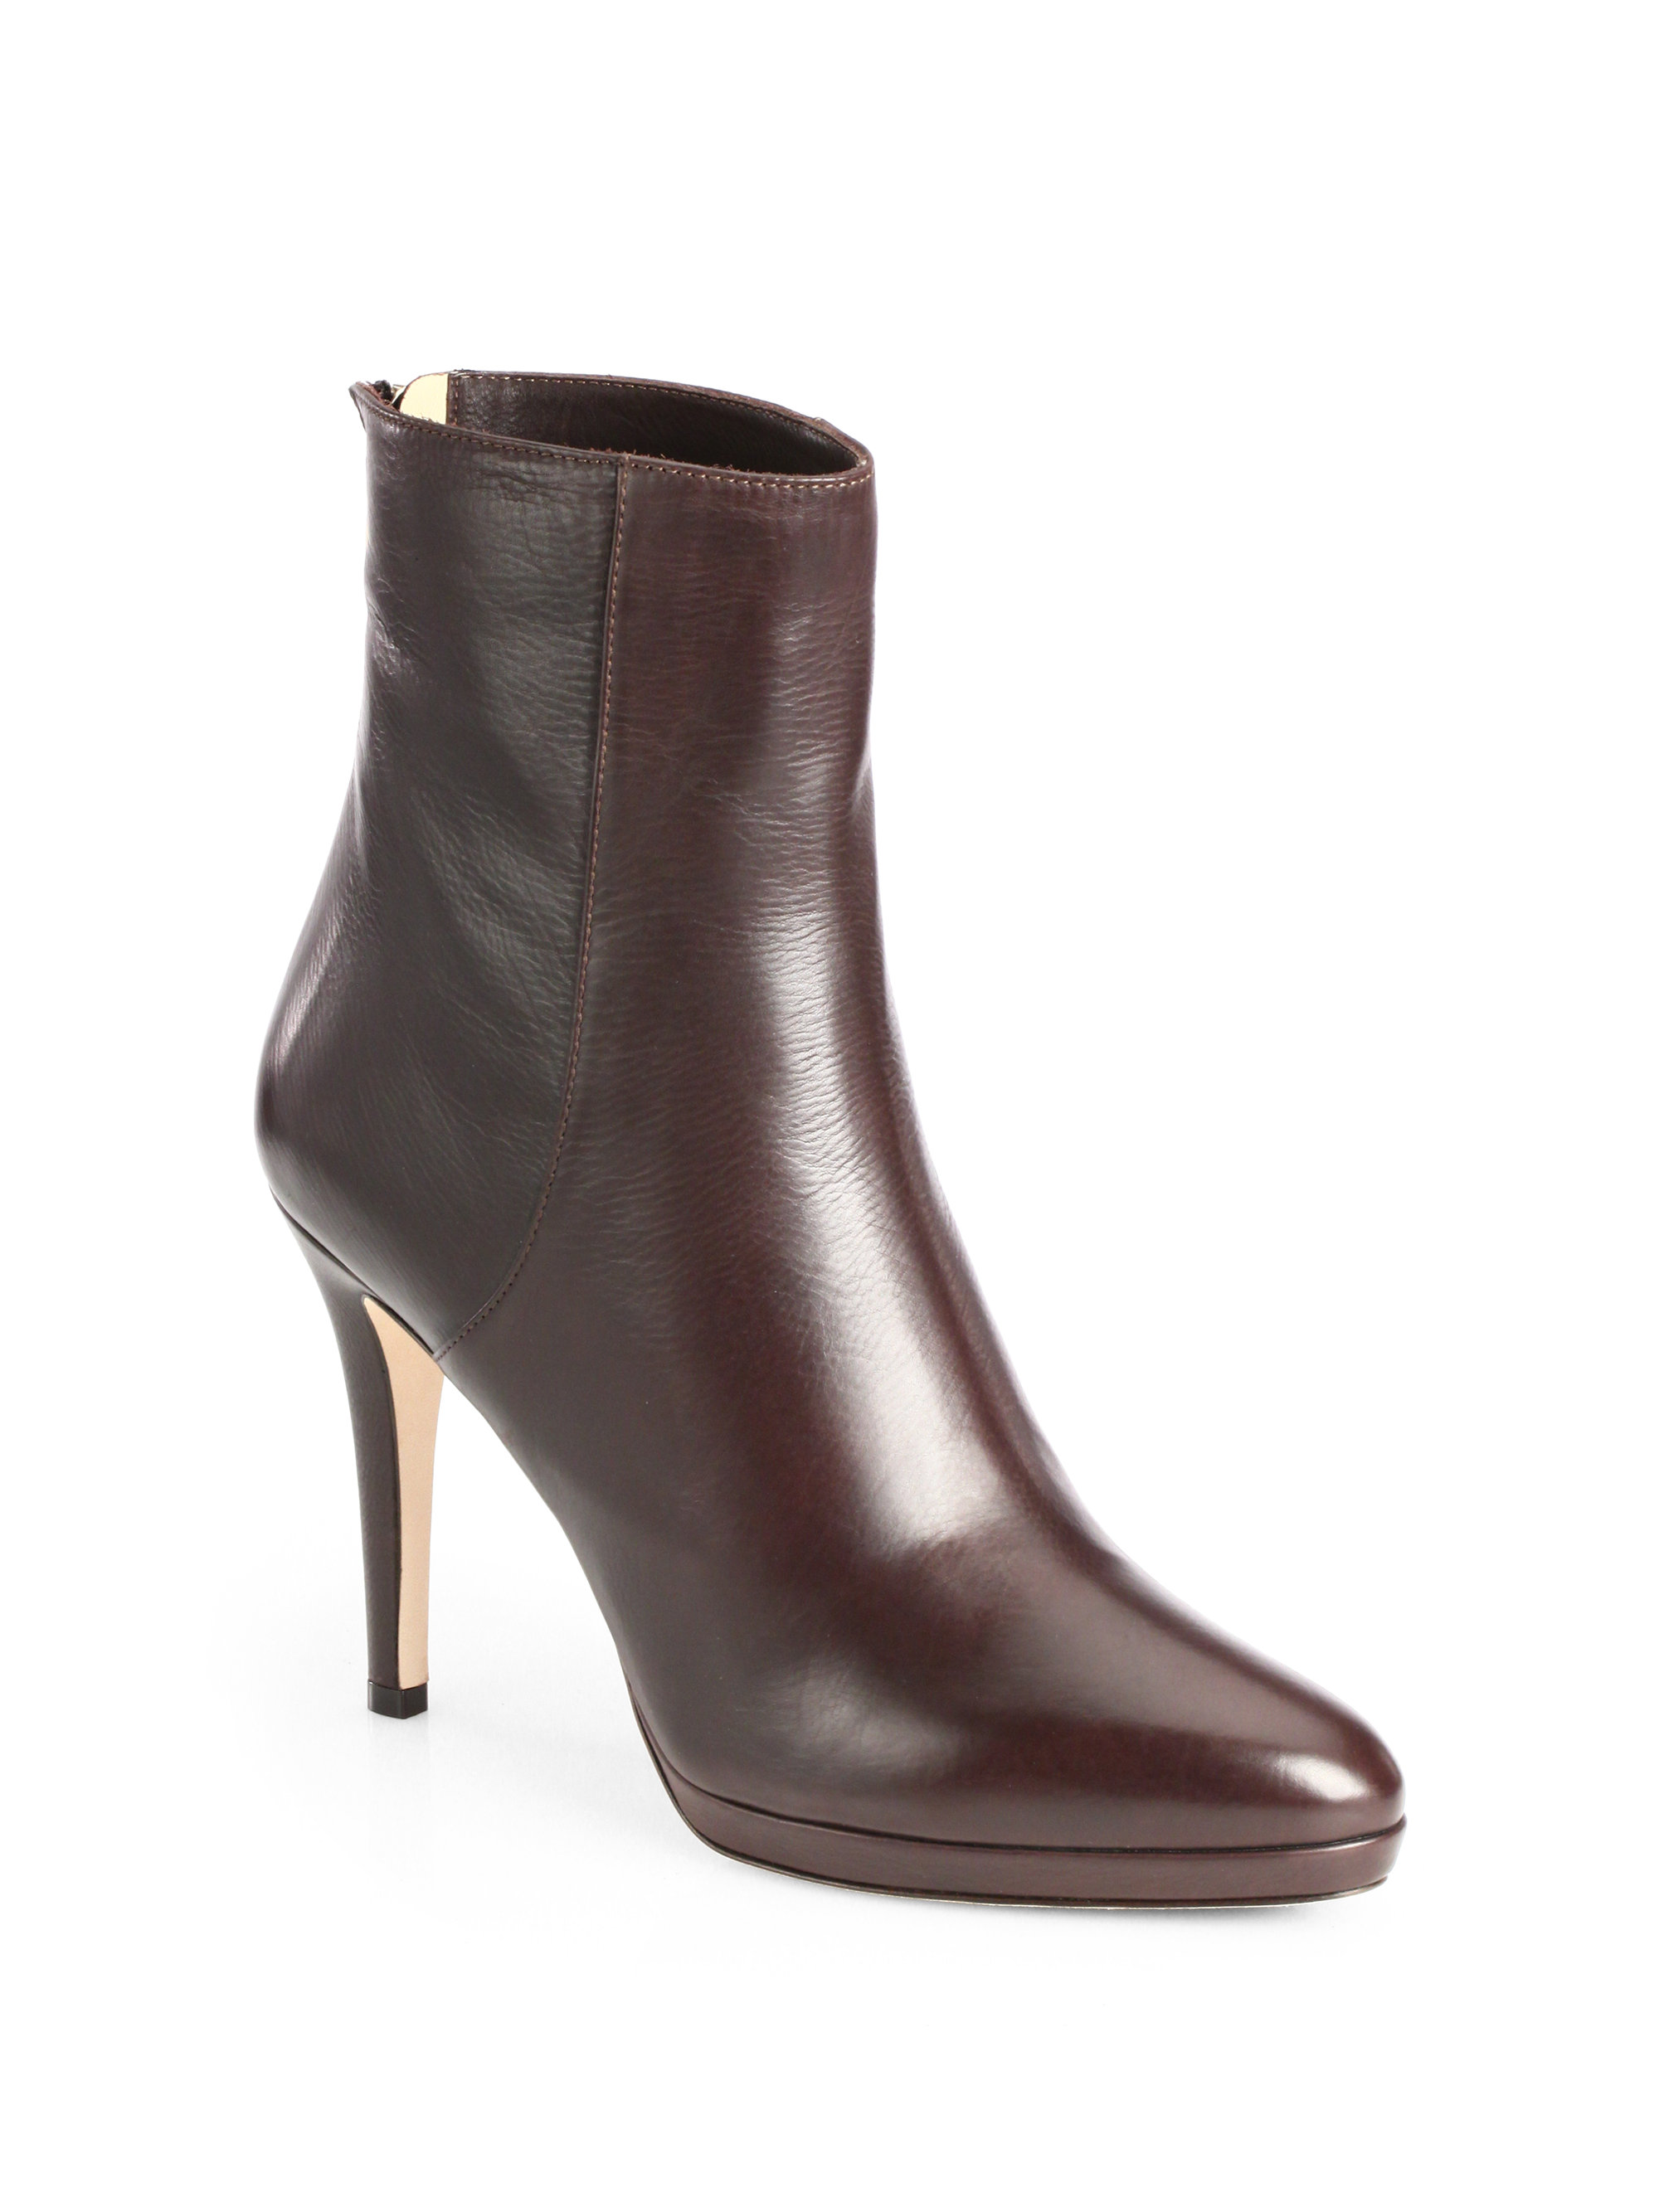 PLUM PLUM Block Heel Ankle Boots Black outlet purchase pre order for sale cheap sale 2015 new buy cheap pay with paypal outlet big discount jZijw